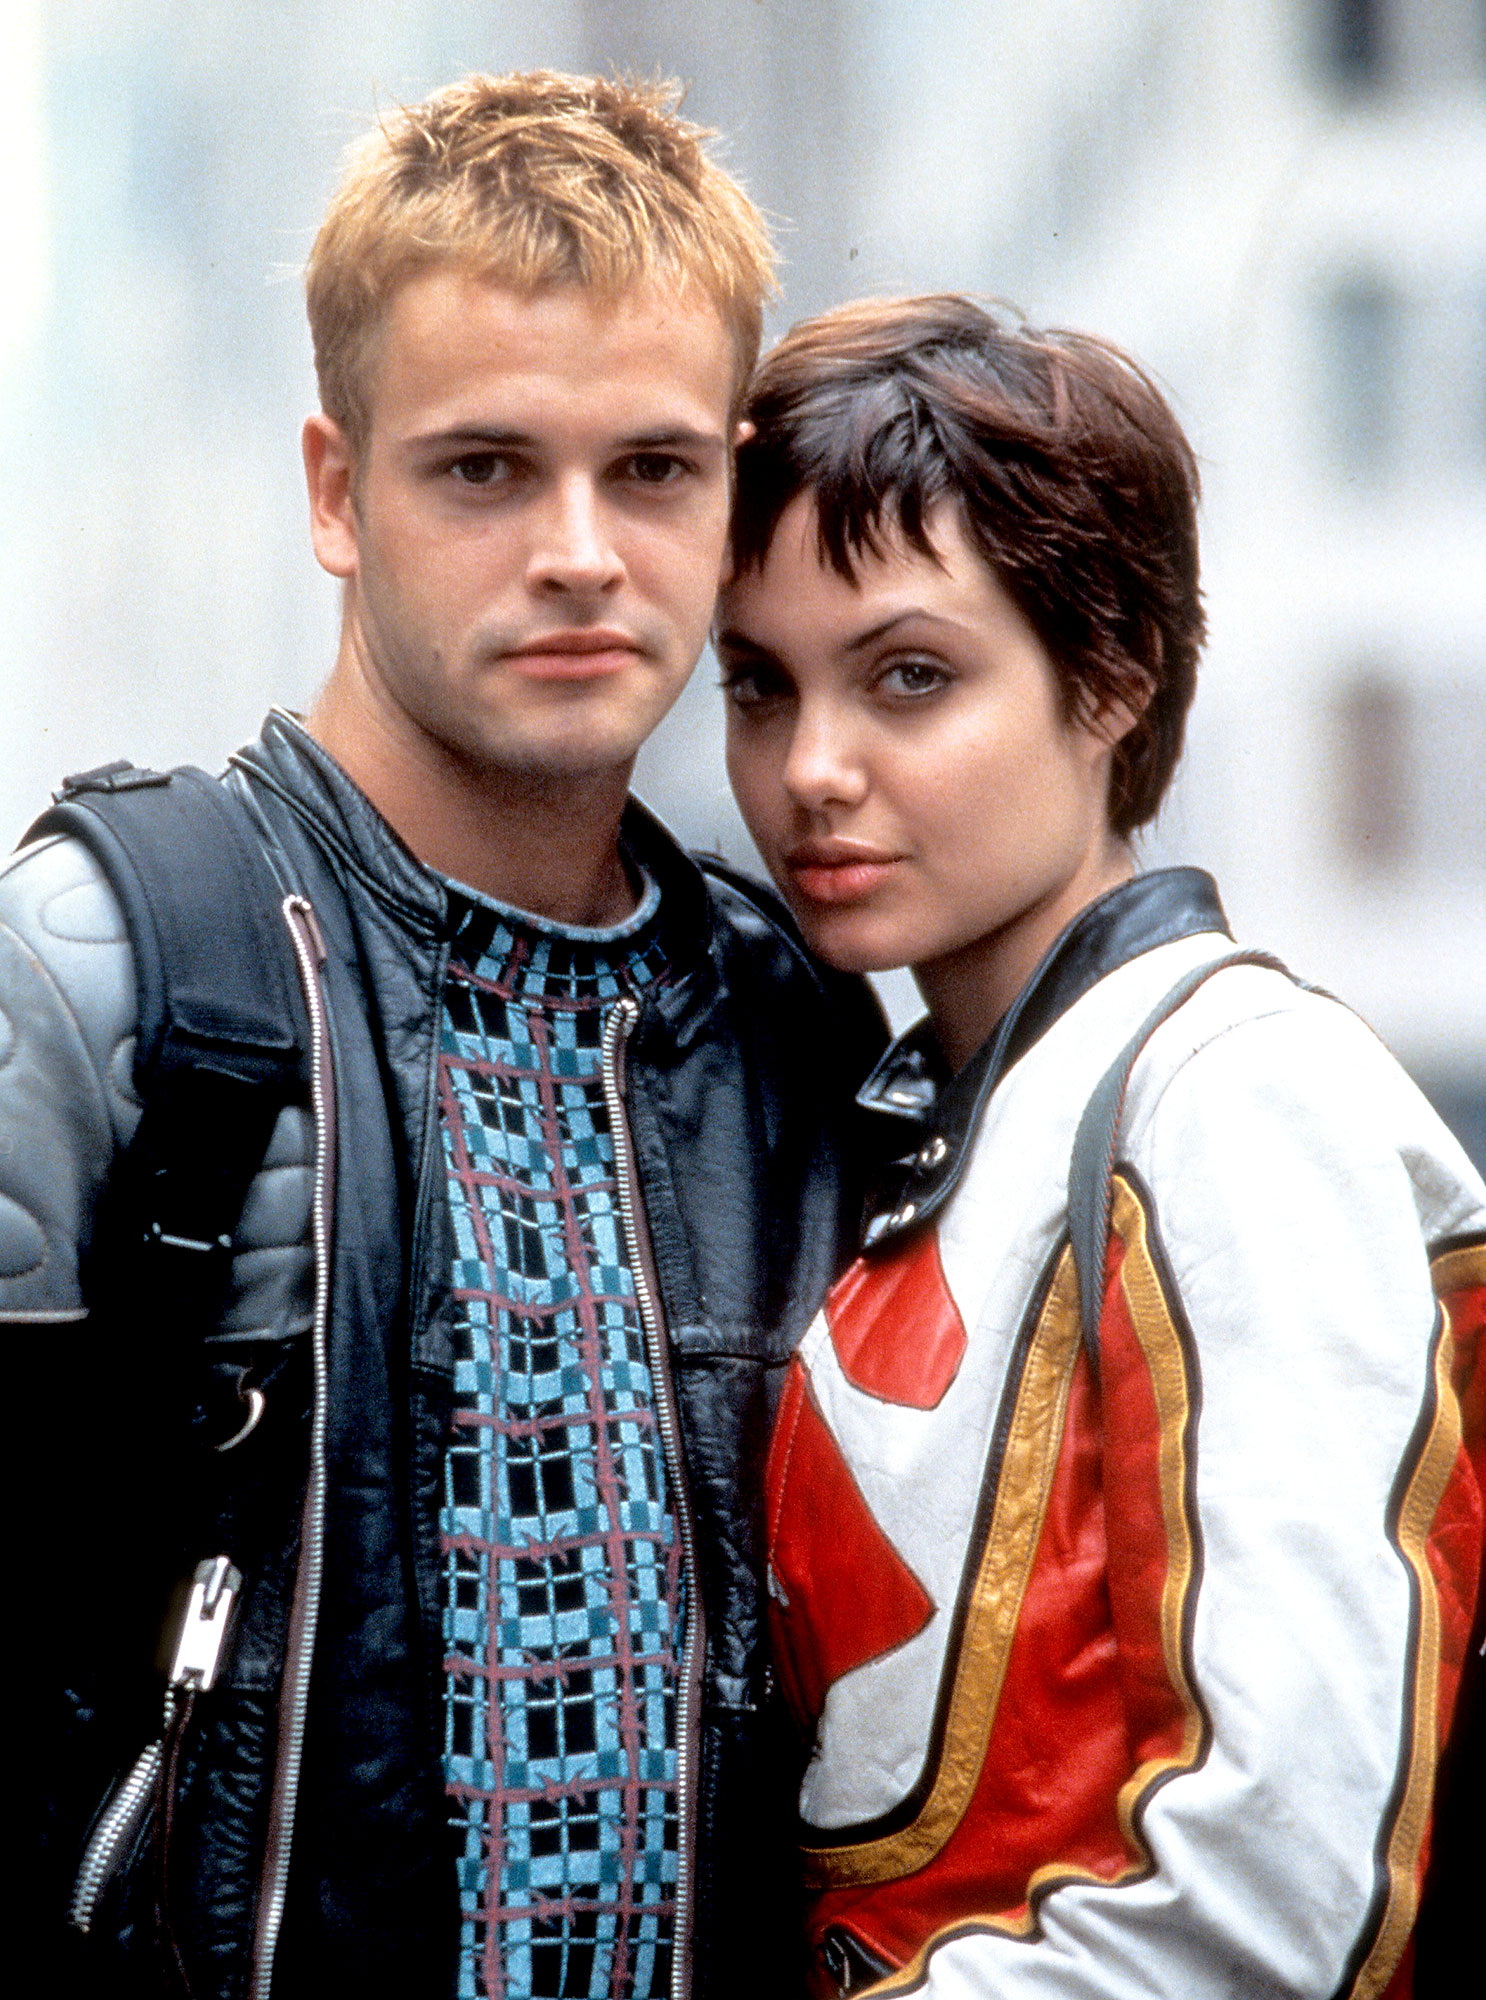 Jonny Lee Miller And Angelina Jolie In A Scene From The Film Hackers 1995 United Artists Getty Images